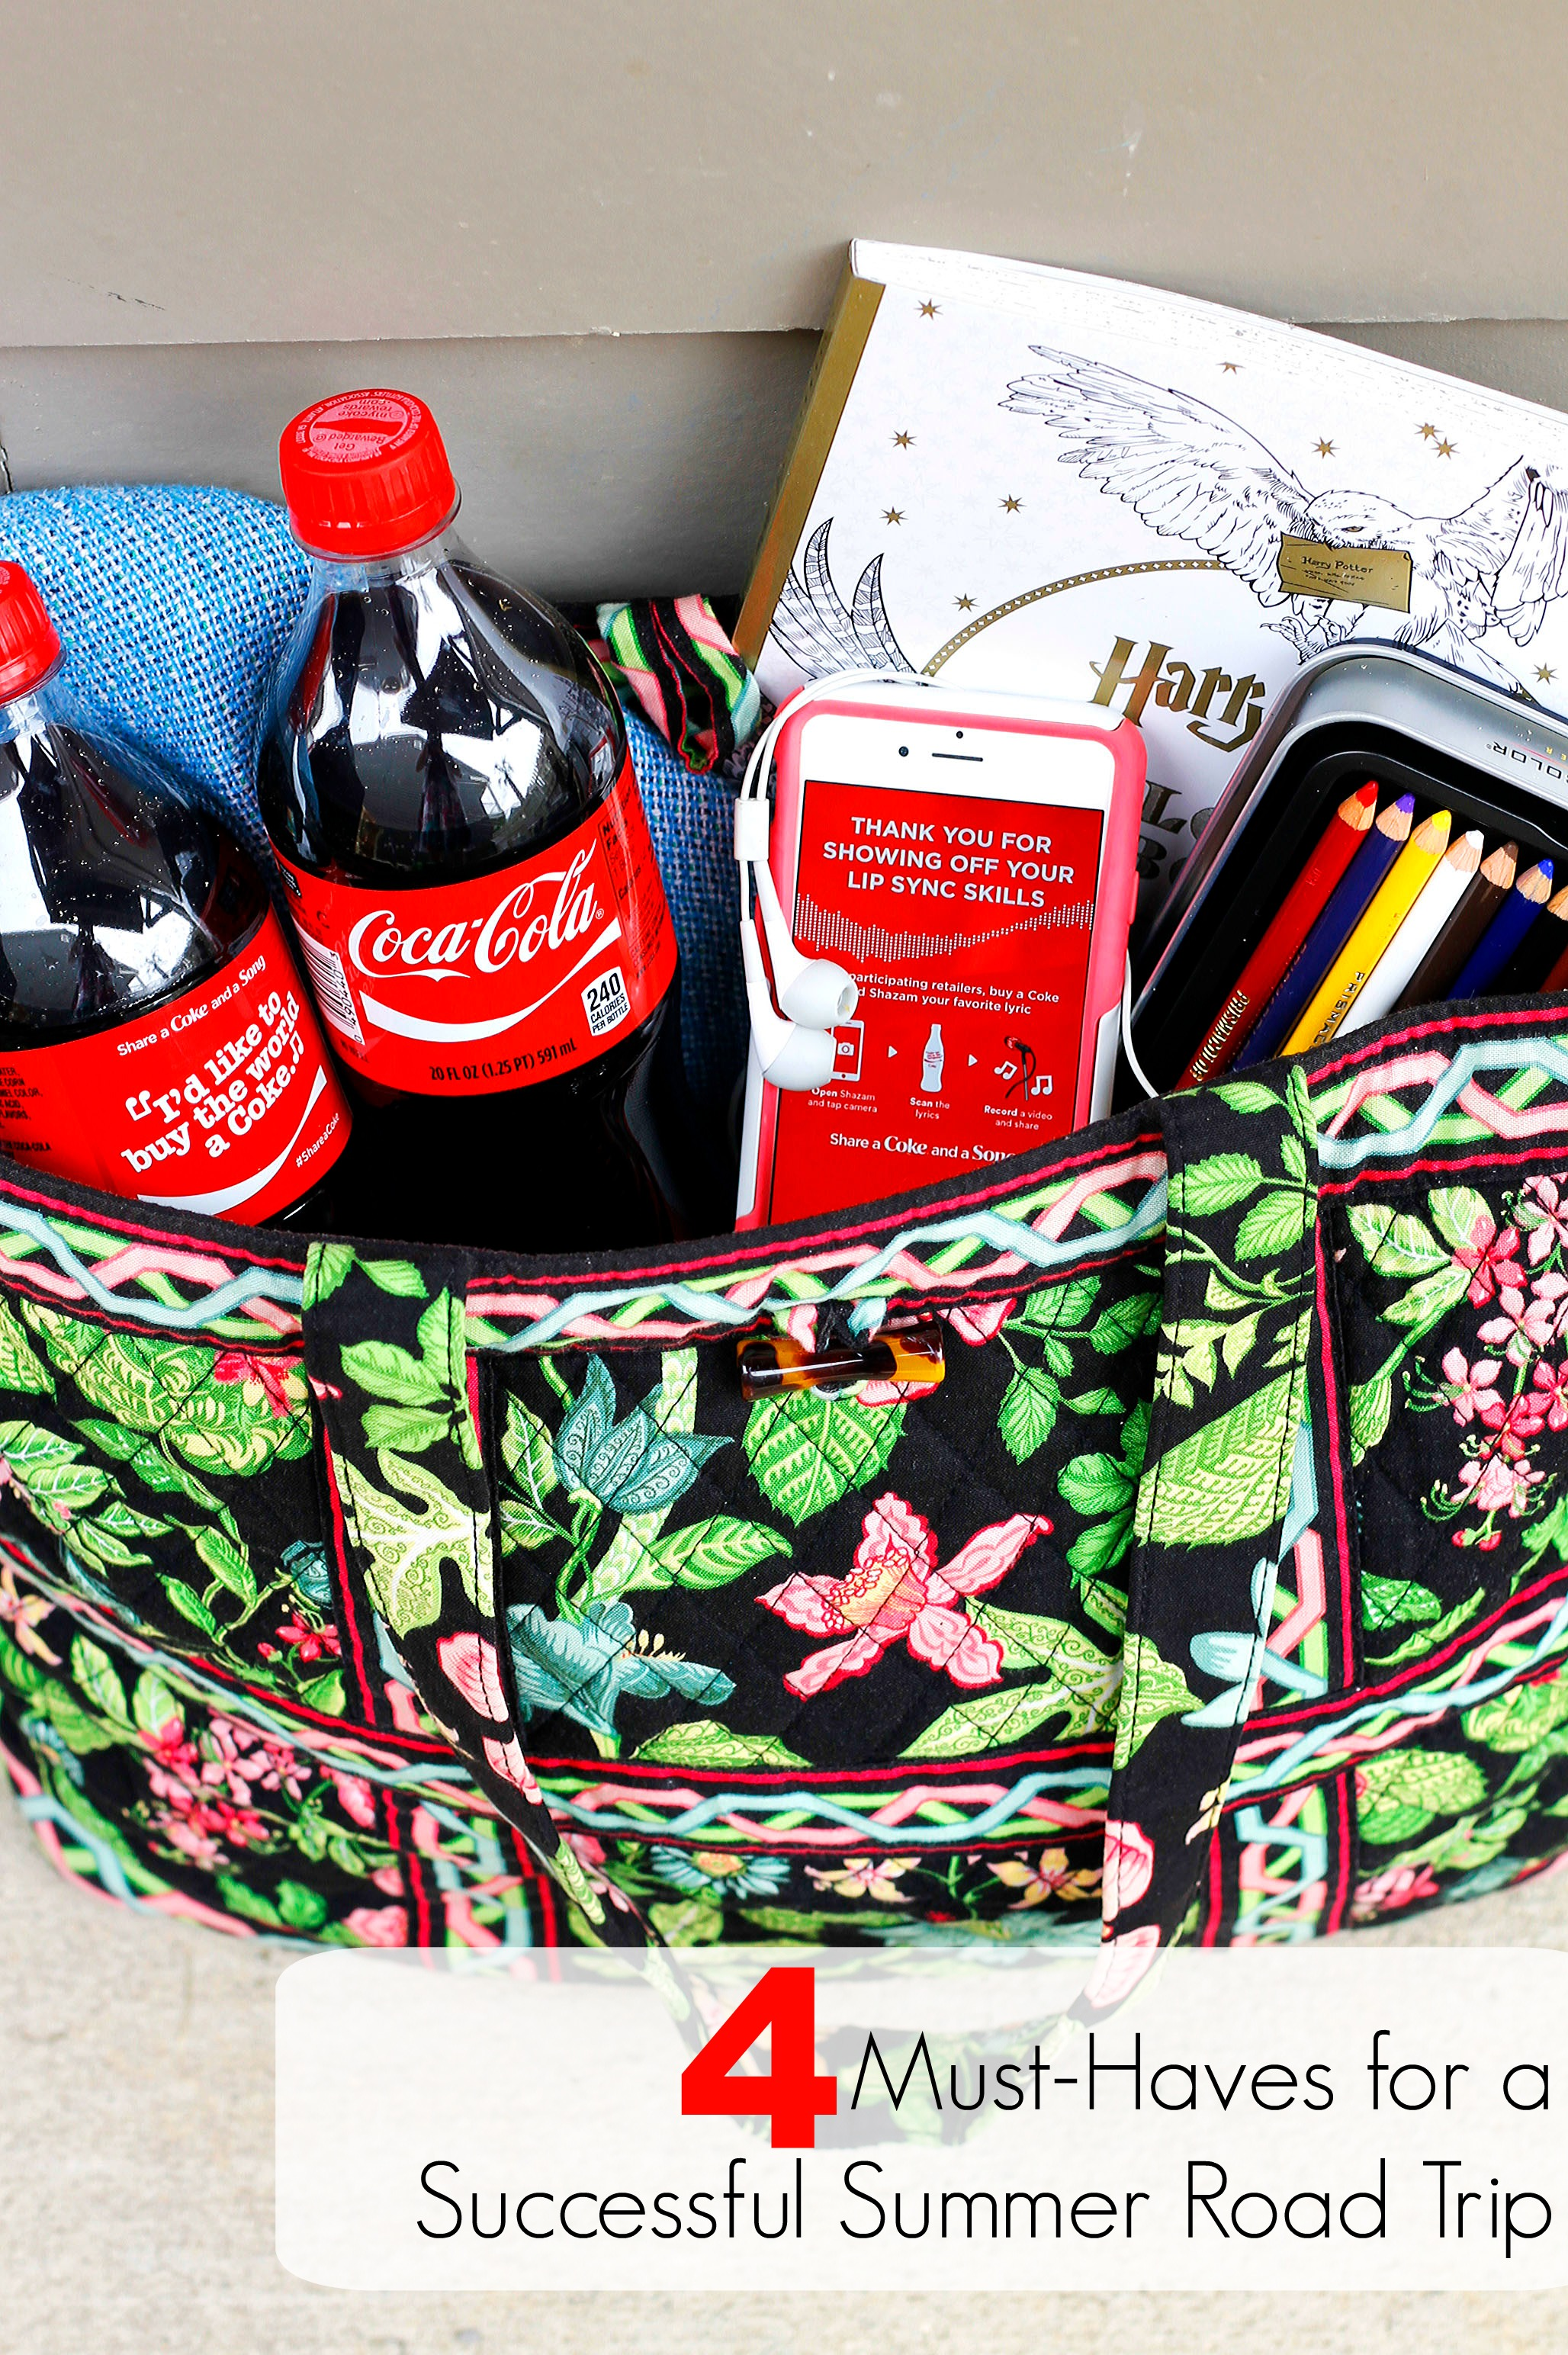 Road trip items for adults